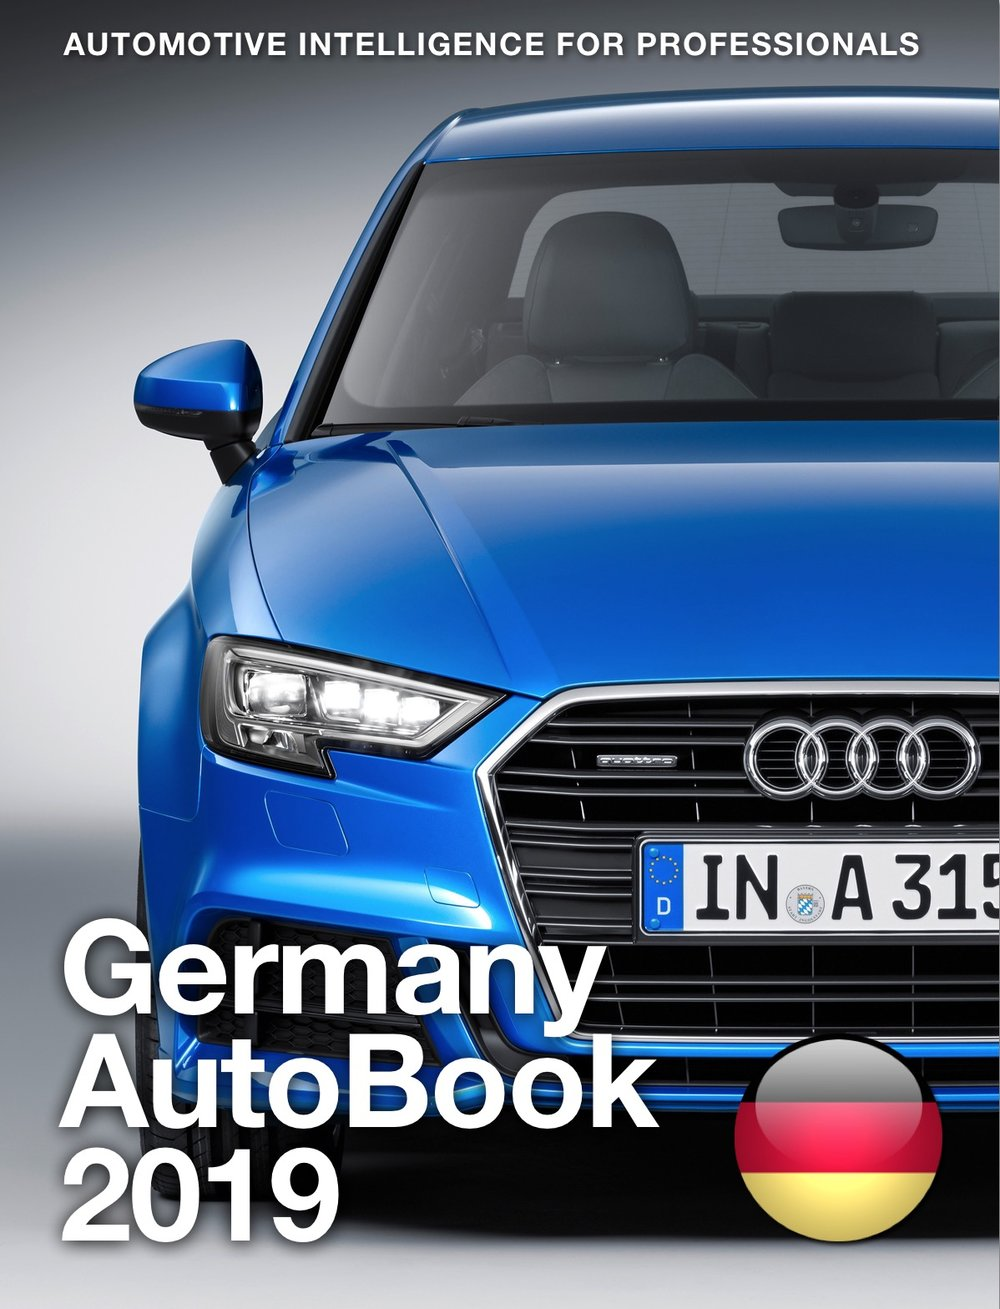 Germany AutoBook 2019 Cover.jpg